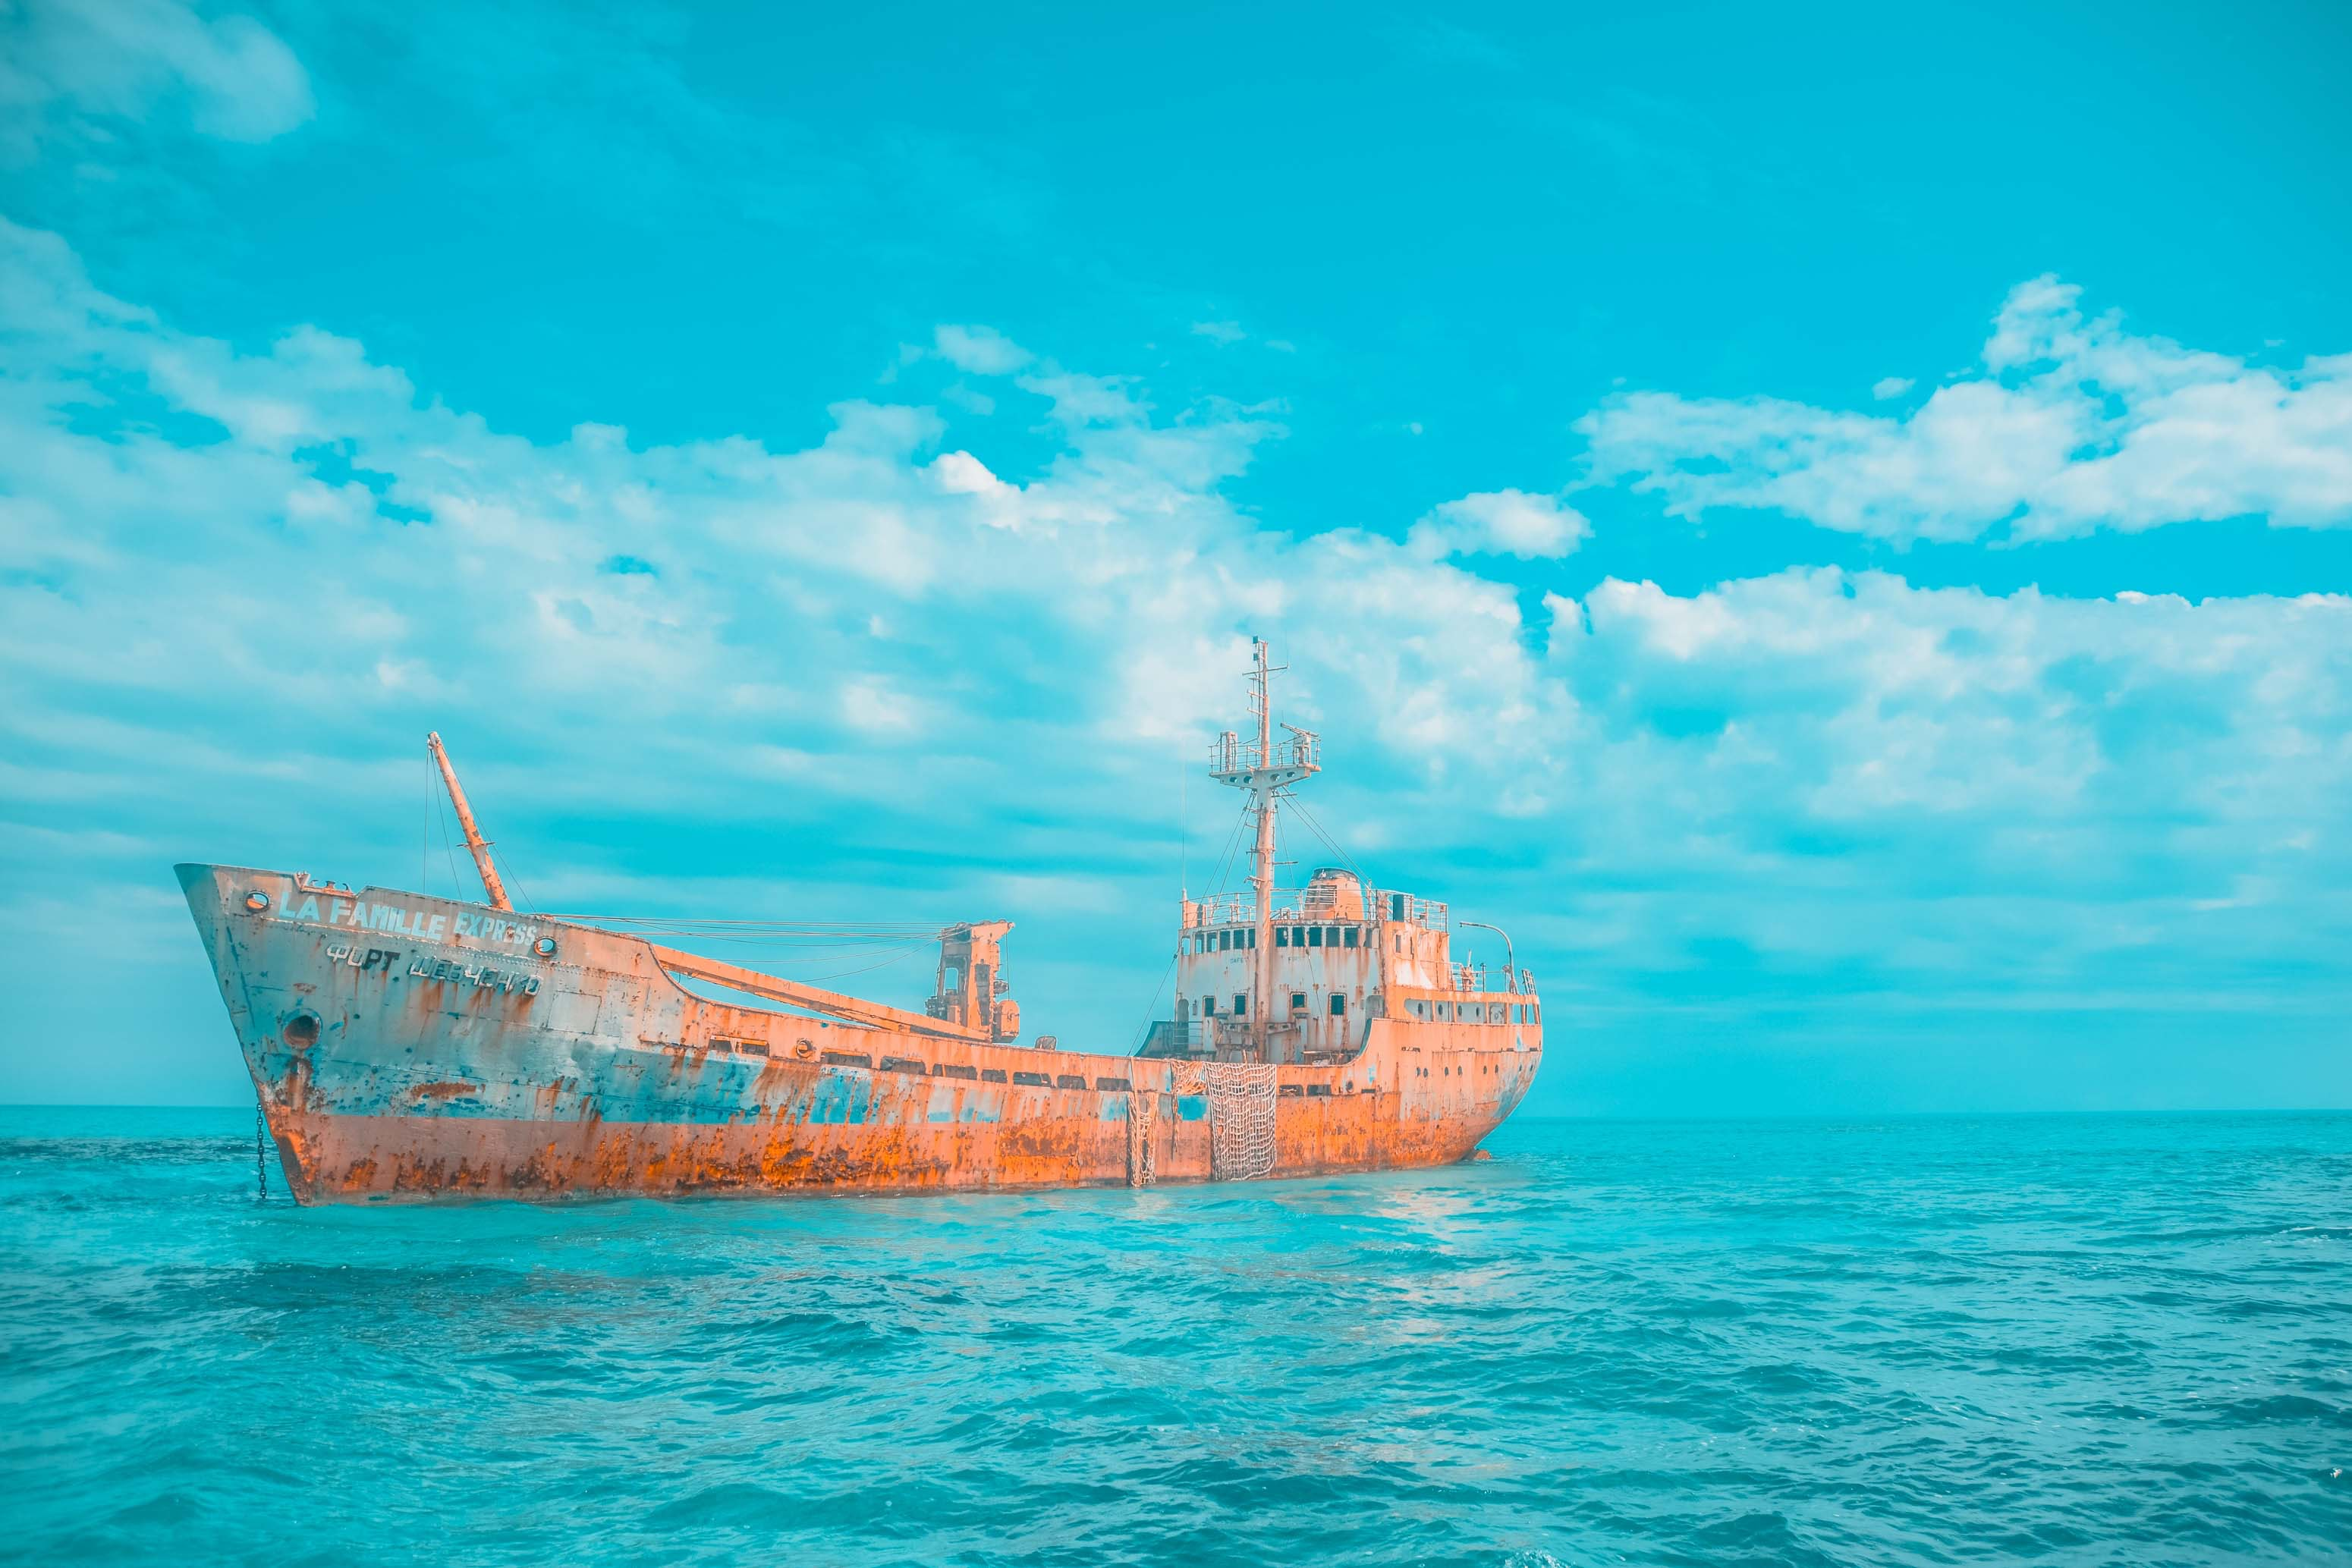 brown and gray cargo ship on body of water